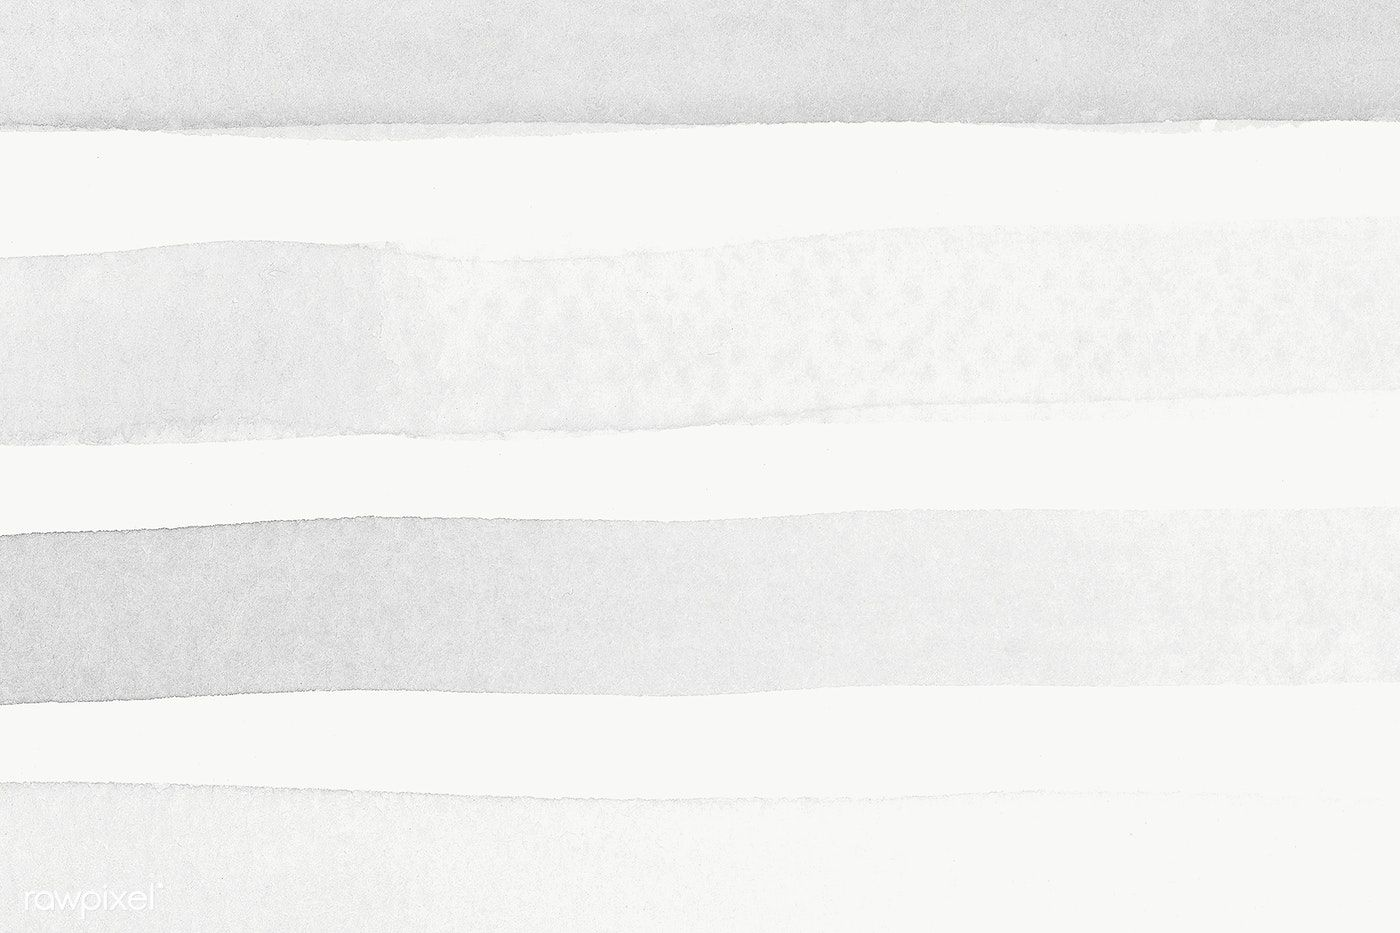 Gray Brush Stroke Patterned Background Design Element Free Image By Rawpixel Com Katie In 2020 Brush Strokes Pattern Background Patterns Background Design